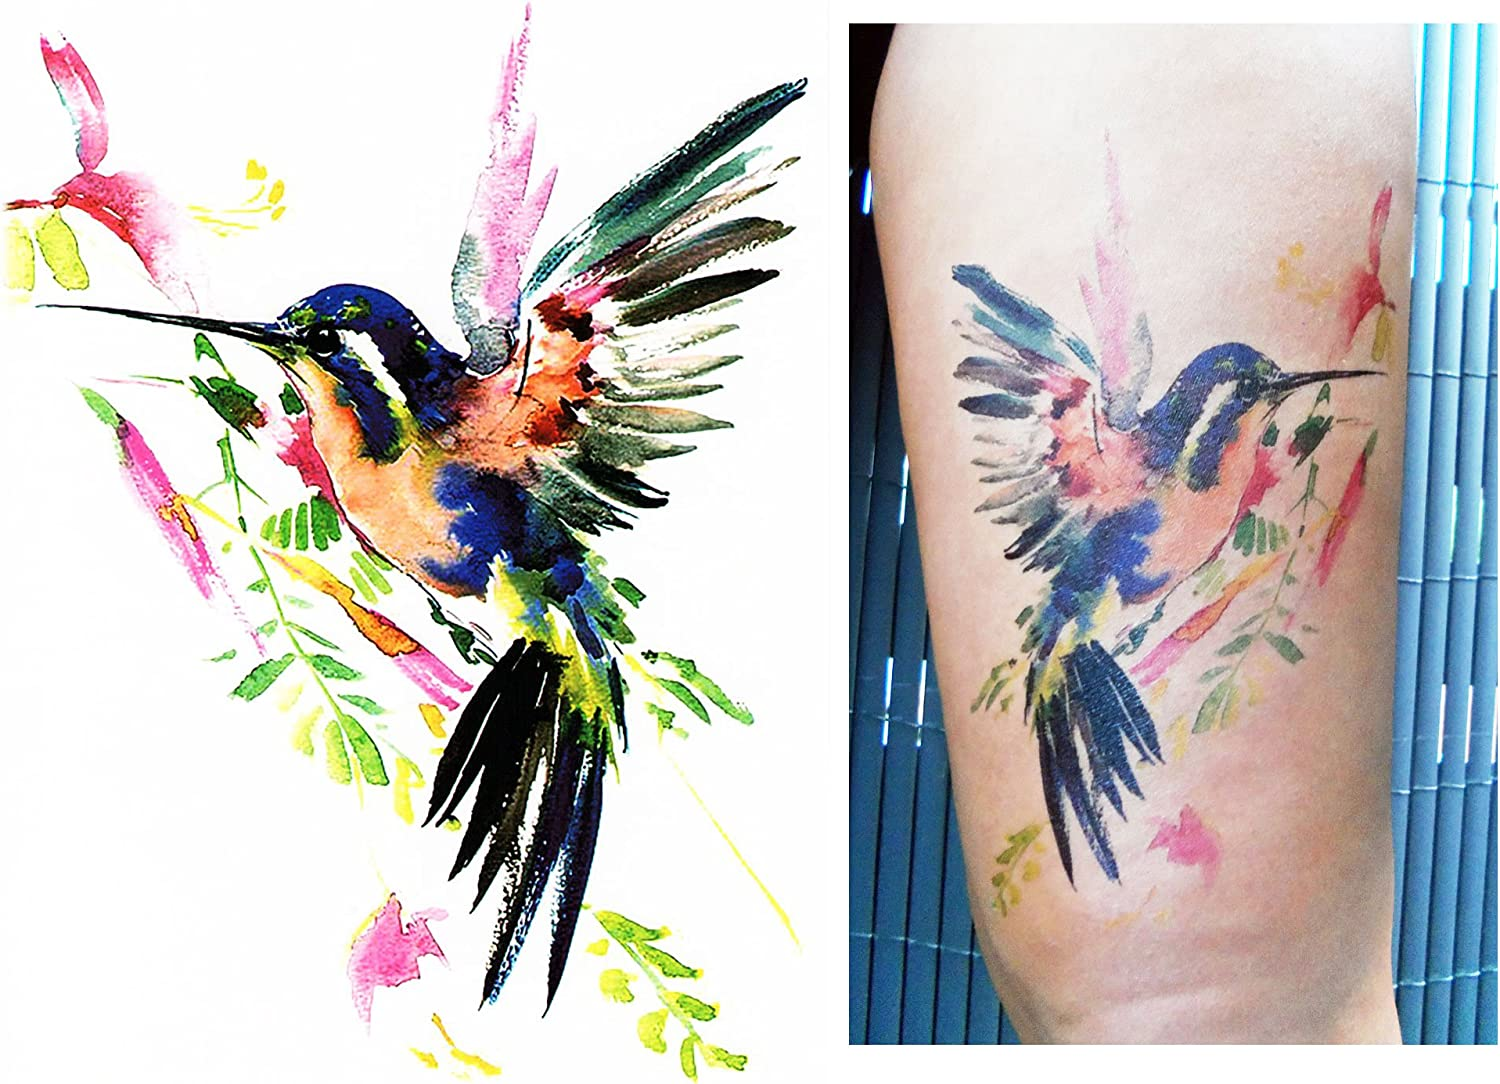 Tatuajes temporales Tempo rary Tattoo Fake Tattoo – De Colibrí ...